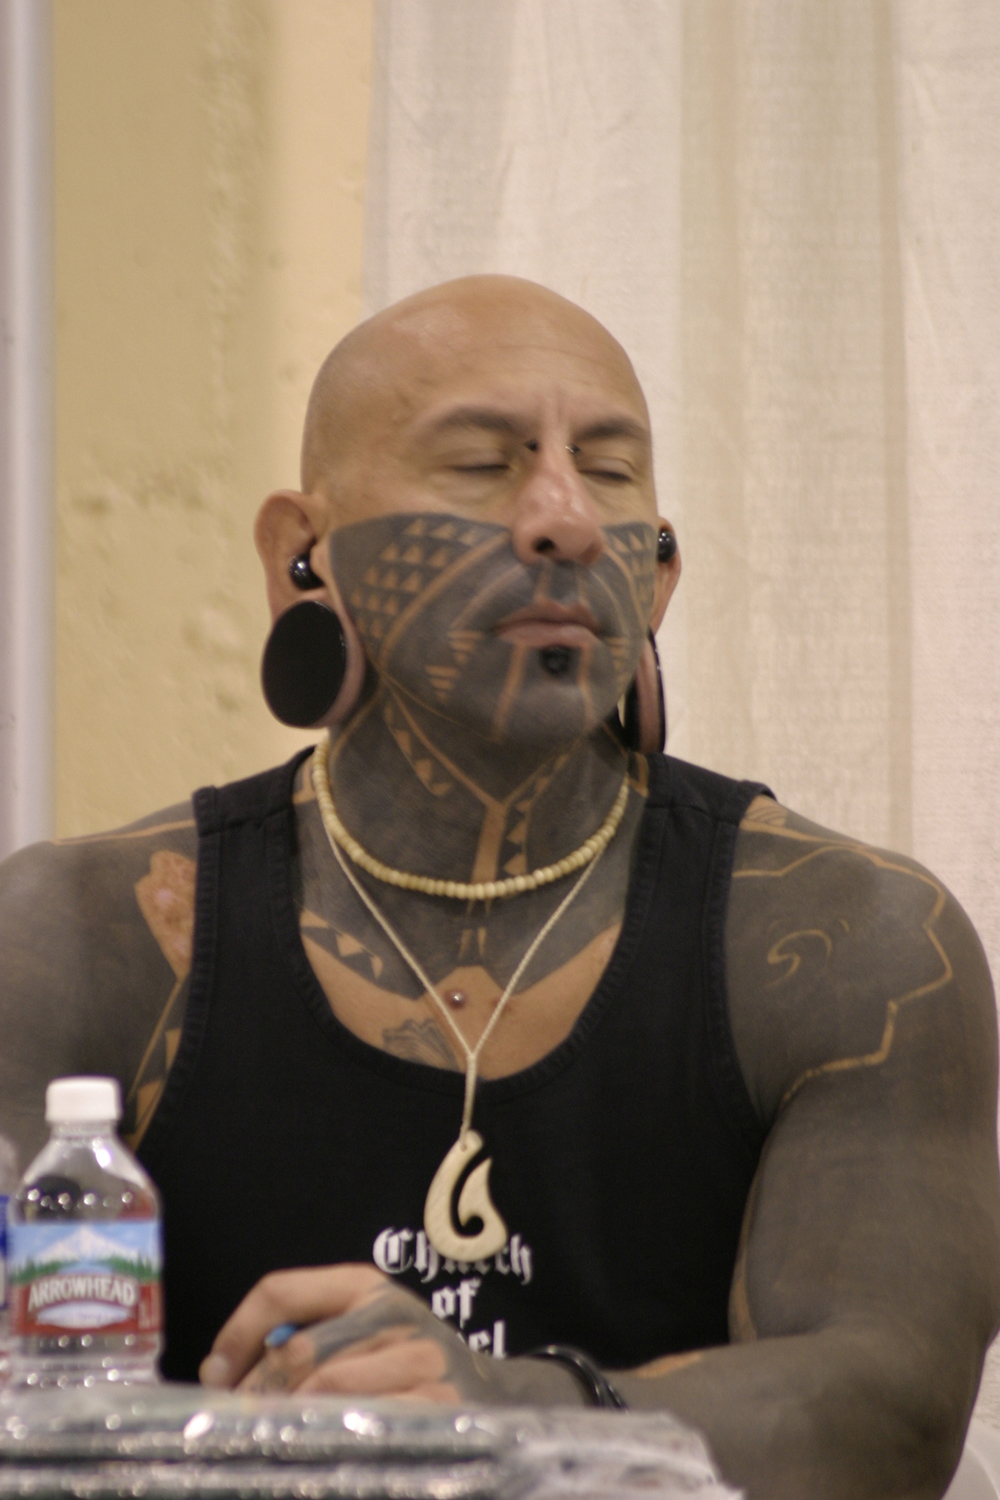 Tattoo_Expo035.JPG